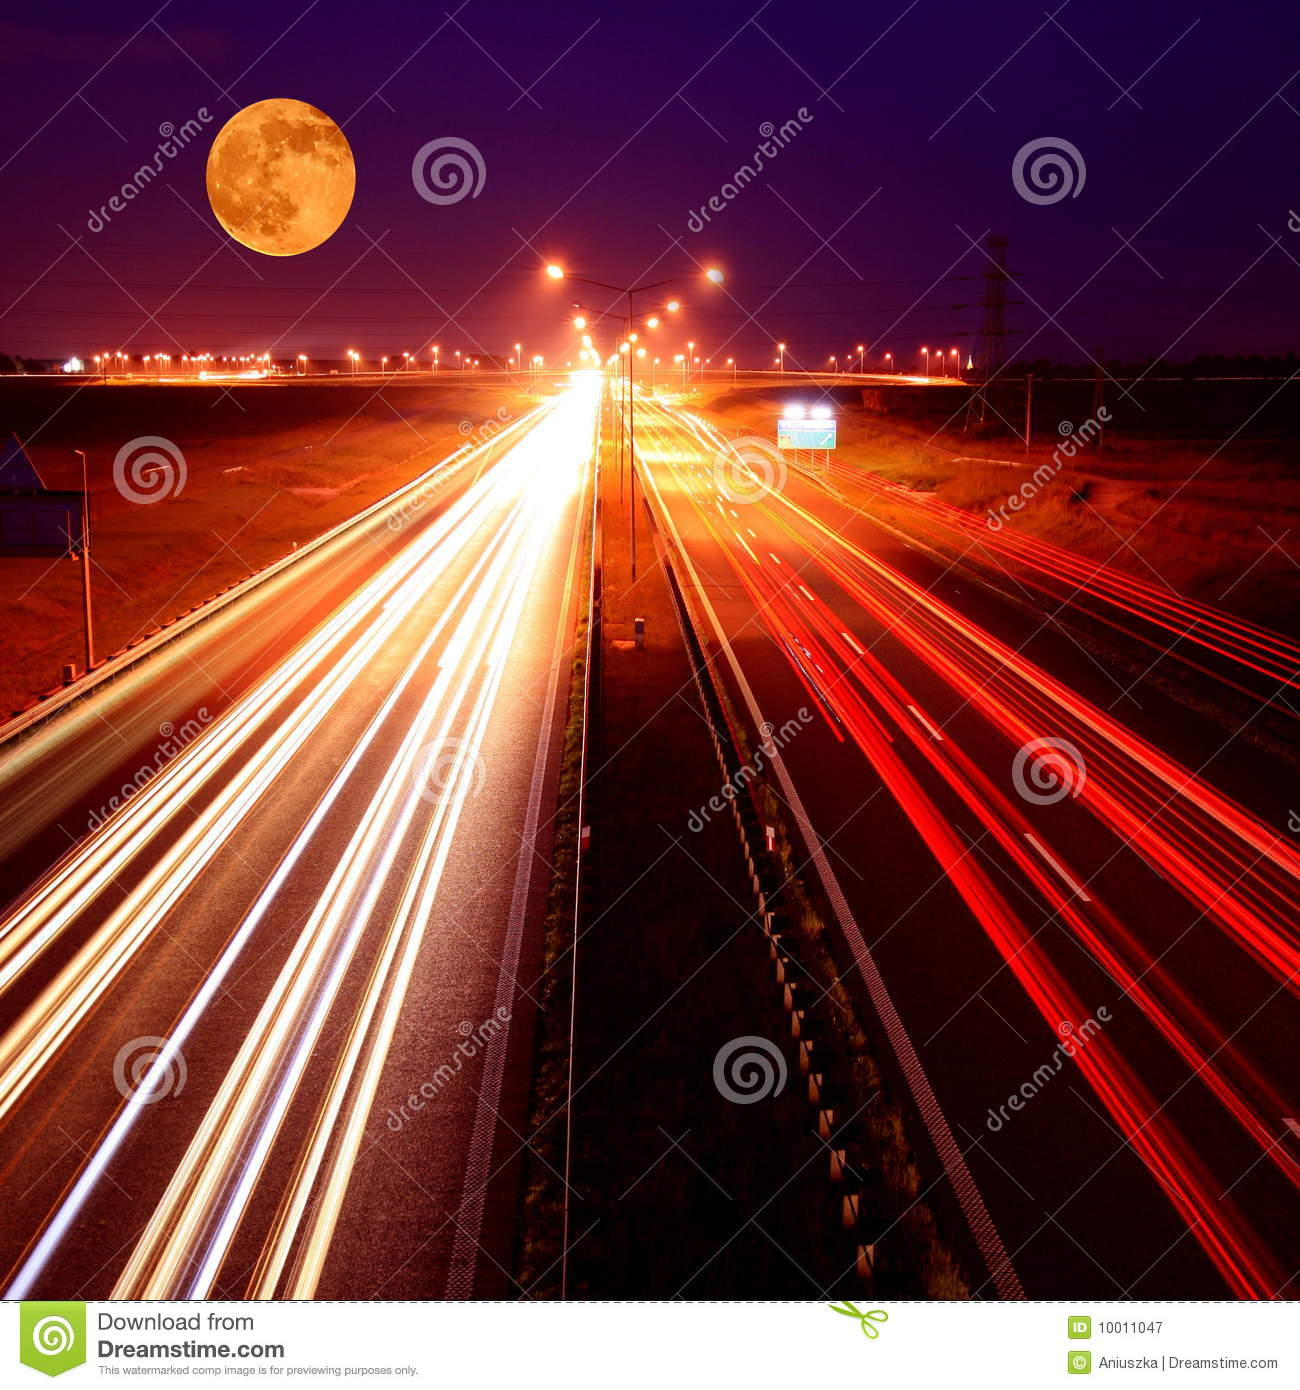 image picture photo stock light motion tunnel free getty detail royalty trails images speed